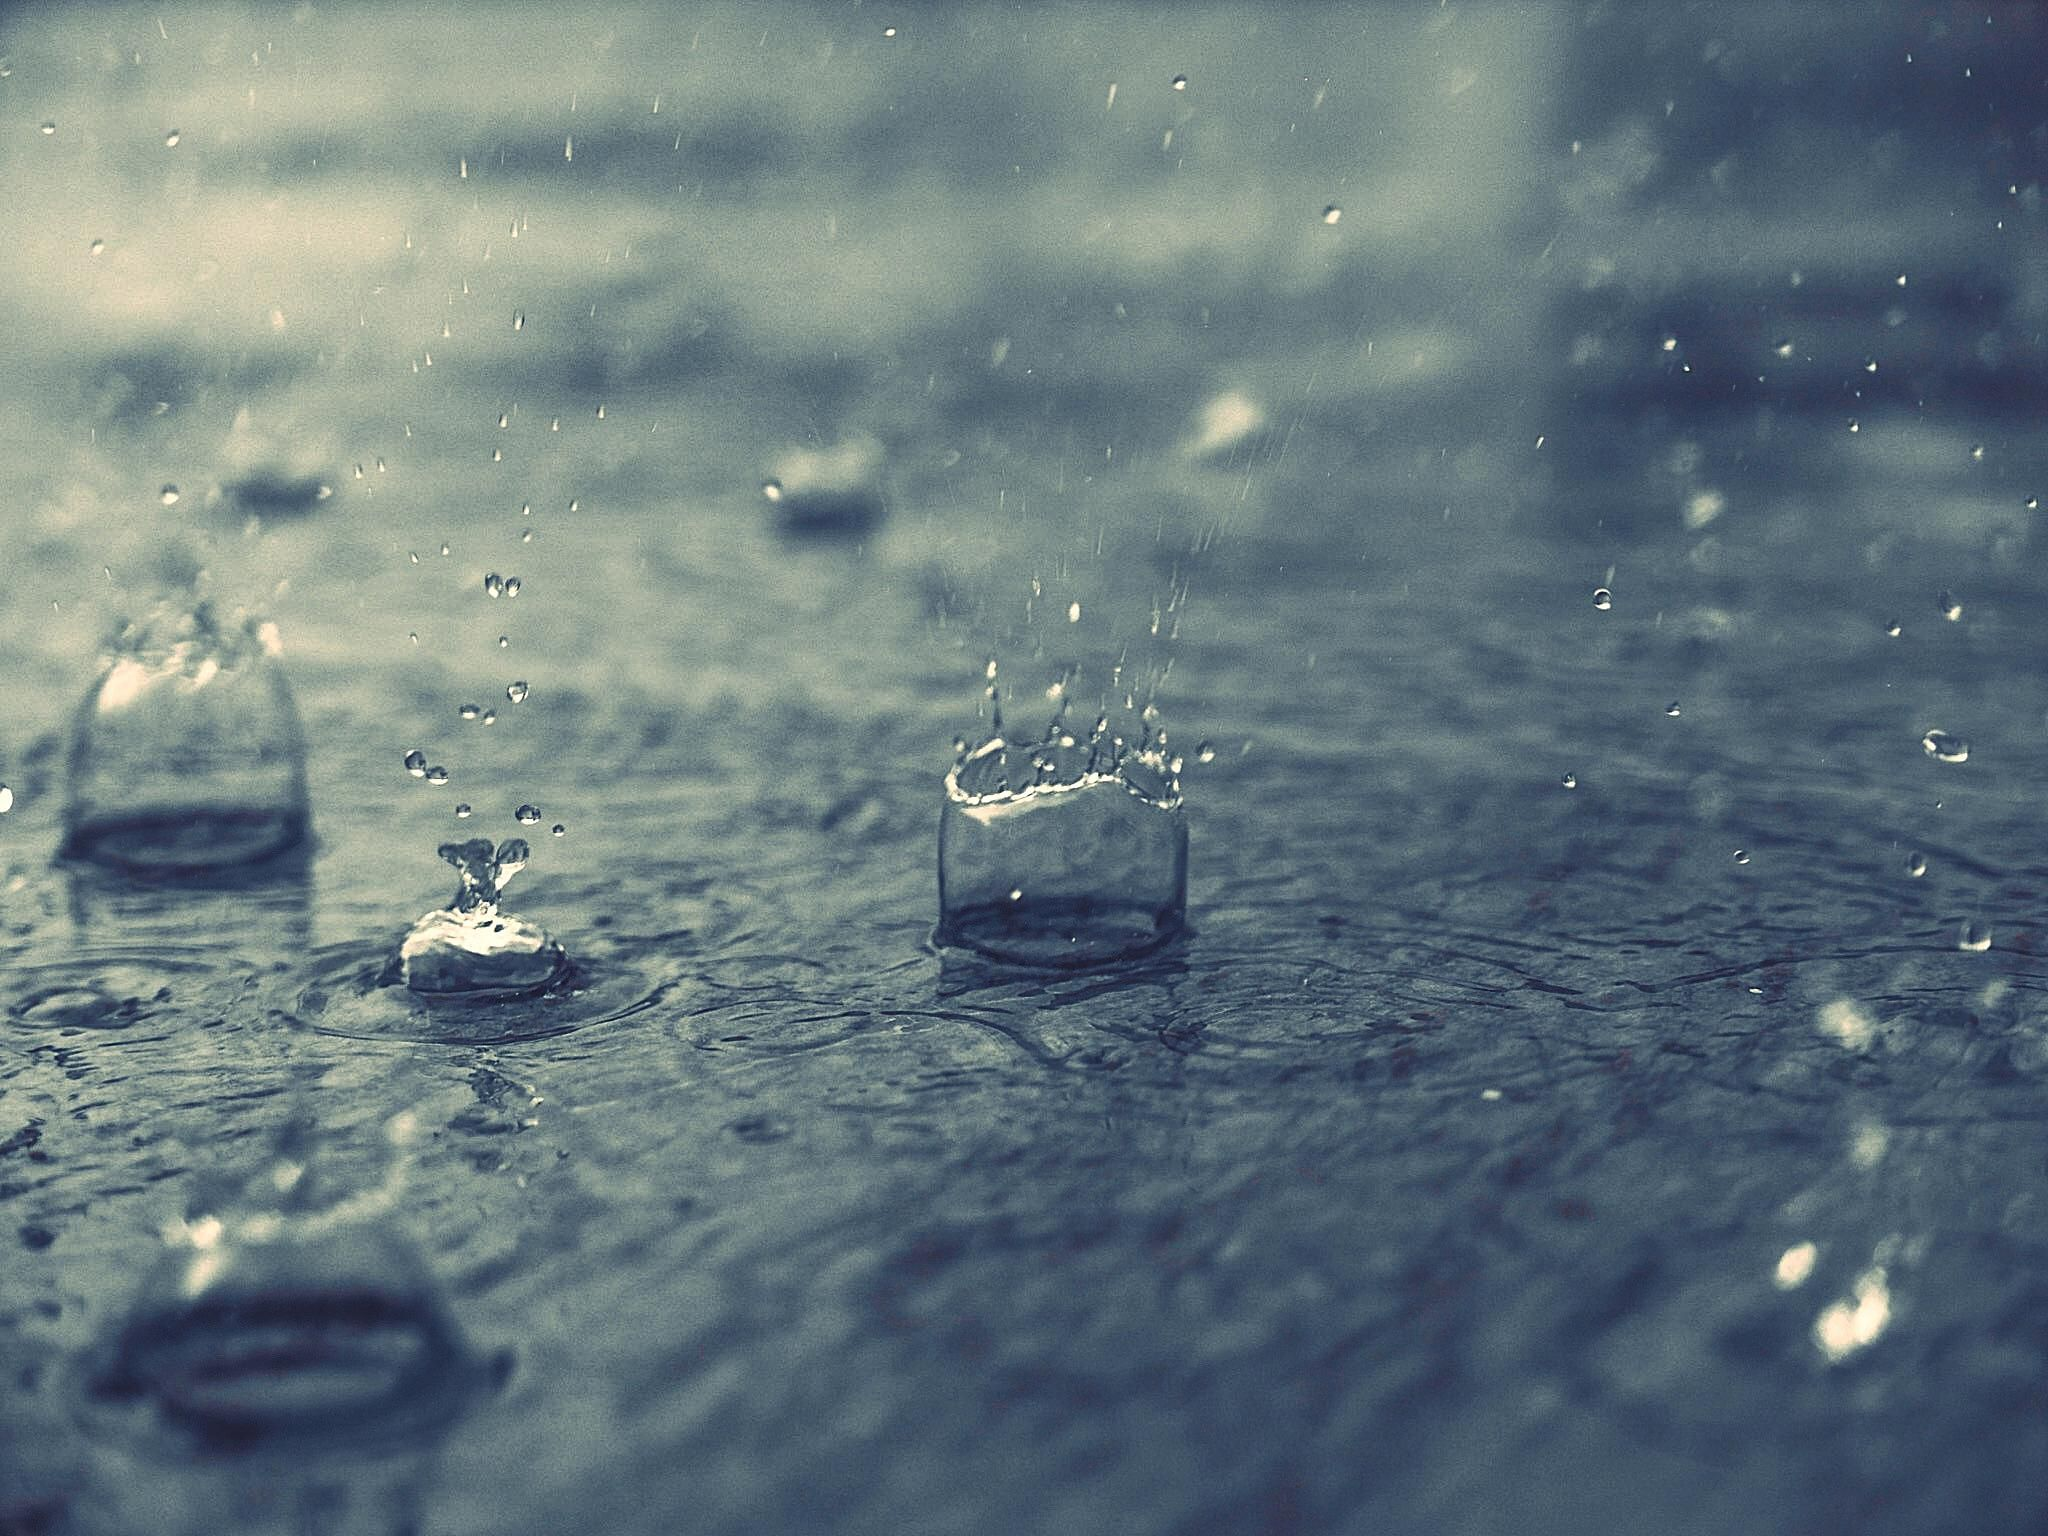 Raindrops Falling From The Sky Wallpaper Rain Snow Sleet And Other Types Of Precipitation